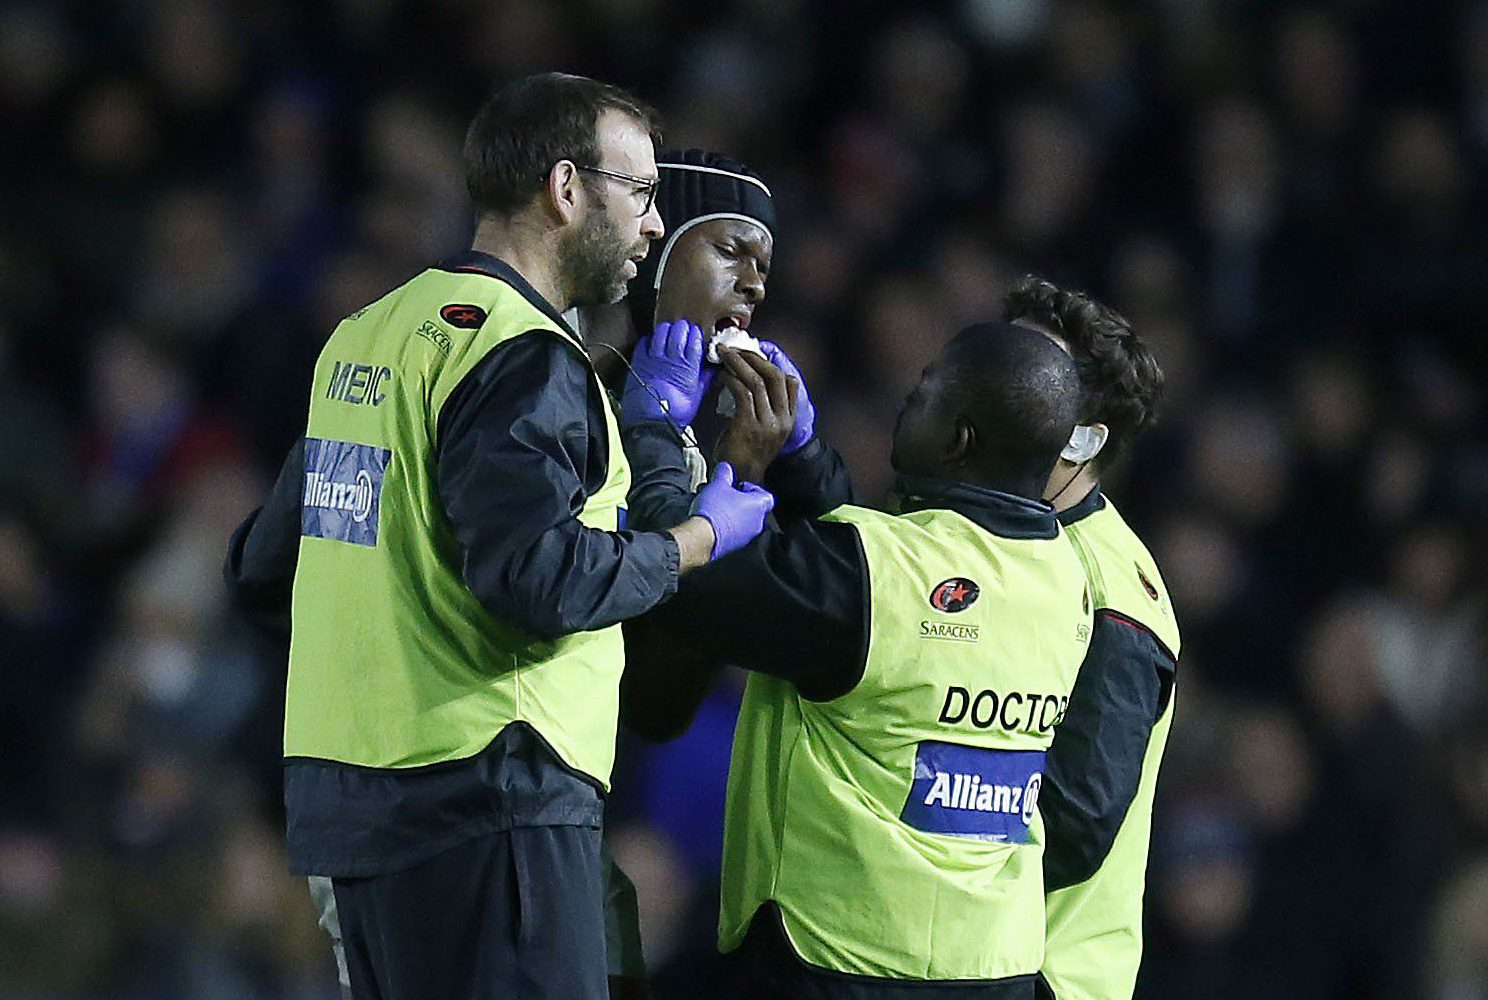 **Image outside of subscription deal, fees apply** Mandatory Credit: Photo by Matthew Impey/REX/Shutterstock (9254753x) Maro Itoje of Saracens is tended to by 3 medical staff after injuring his face in the 2nd half Harlequins v Saracens, Aviva Premiership, Rugby Union, The Stoop, London, UK - 03/12/2017